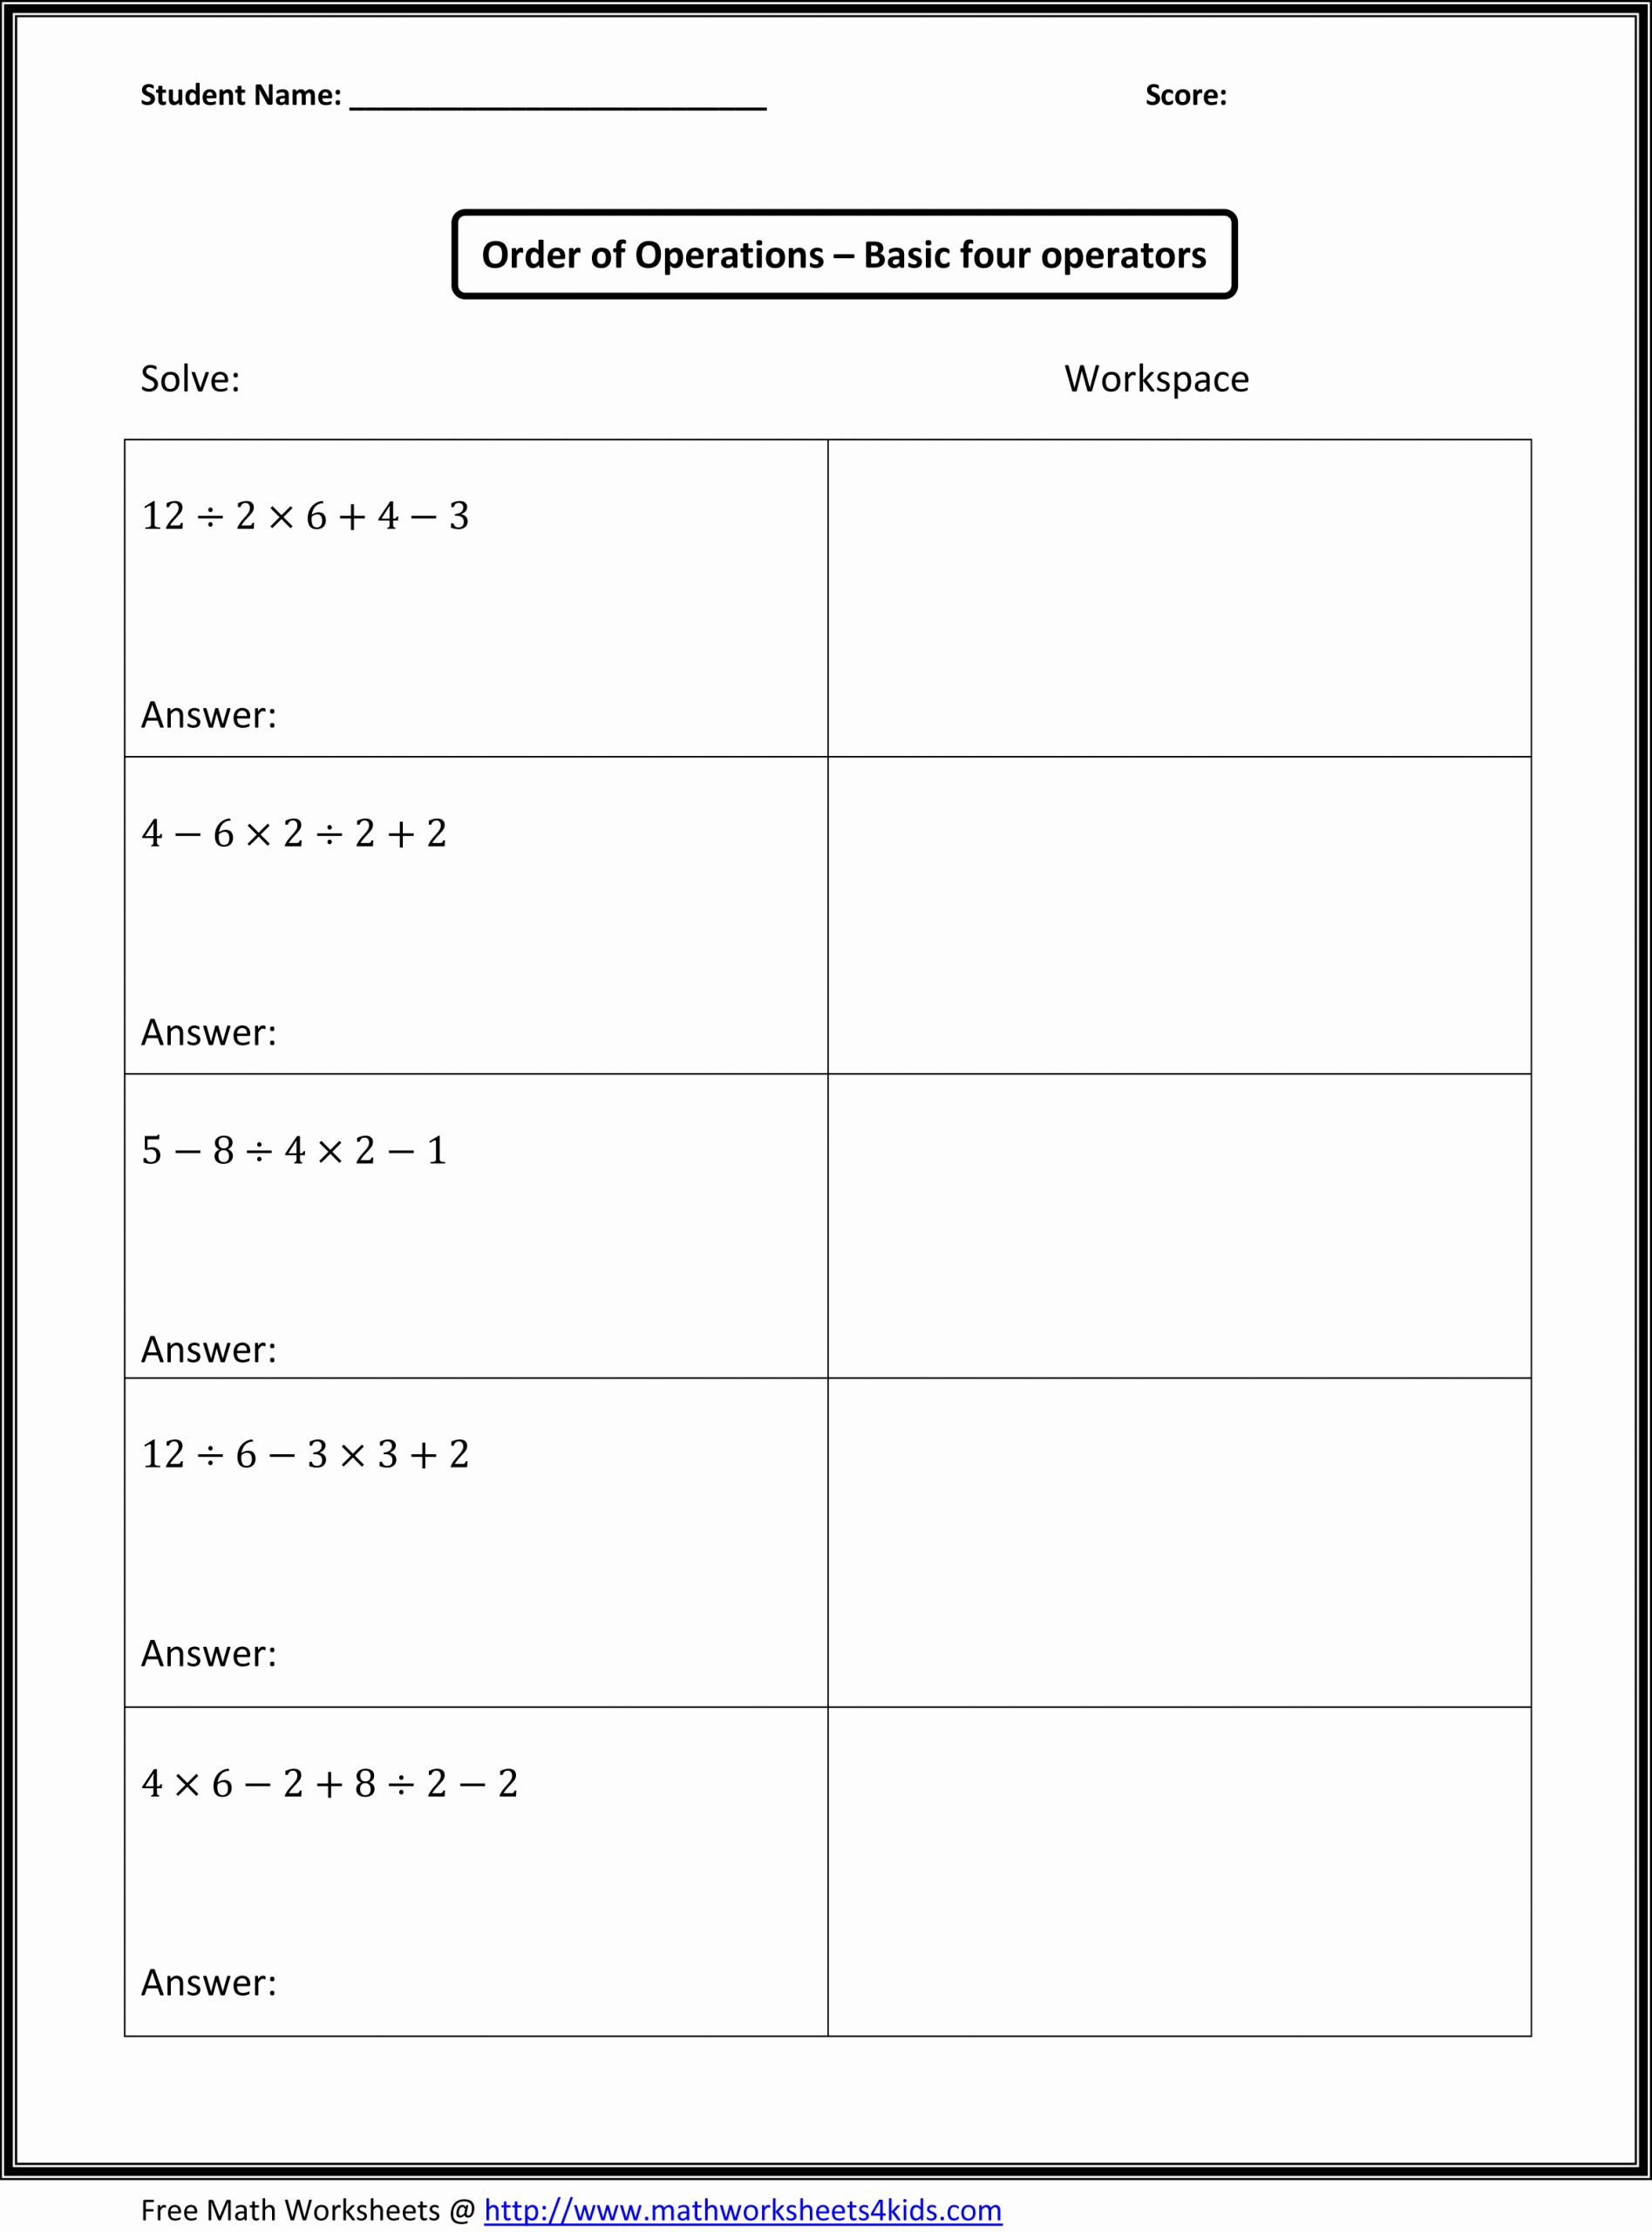 Root Word Worksheets 4th Grade New 13 Best Of Root Word Worksheets to Print Root